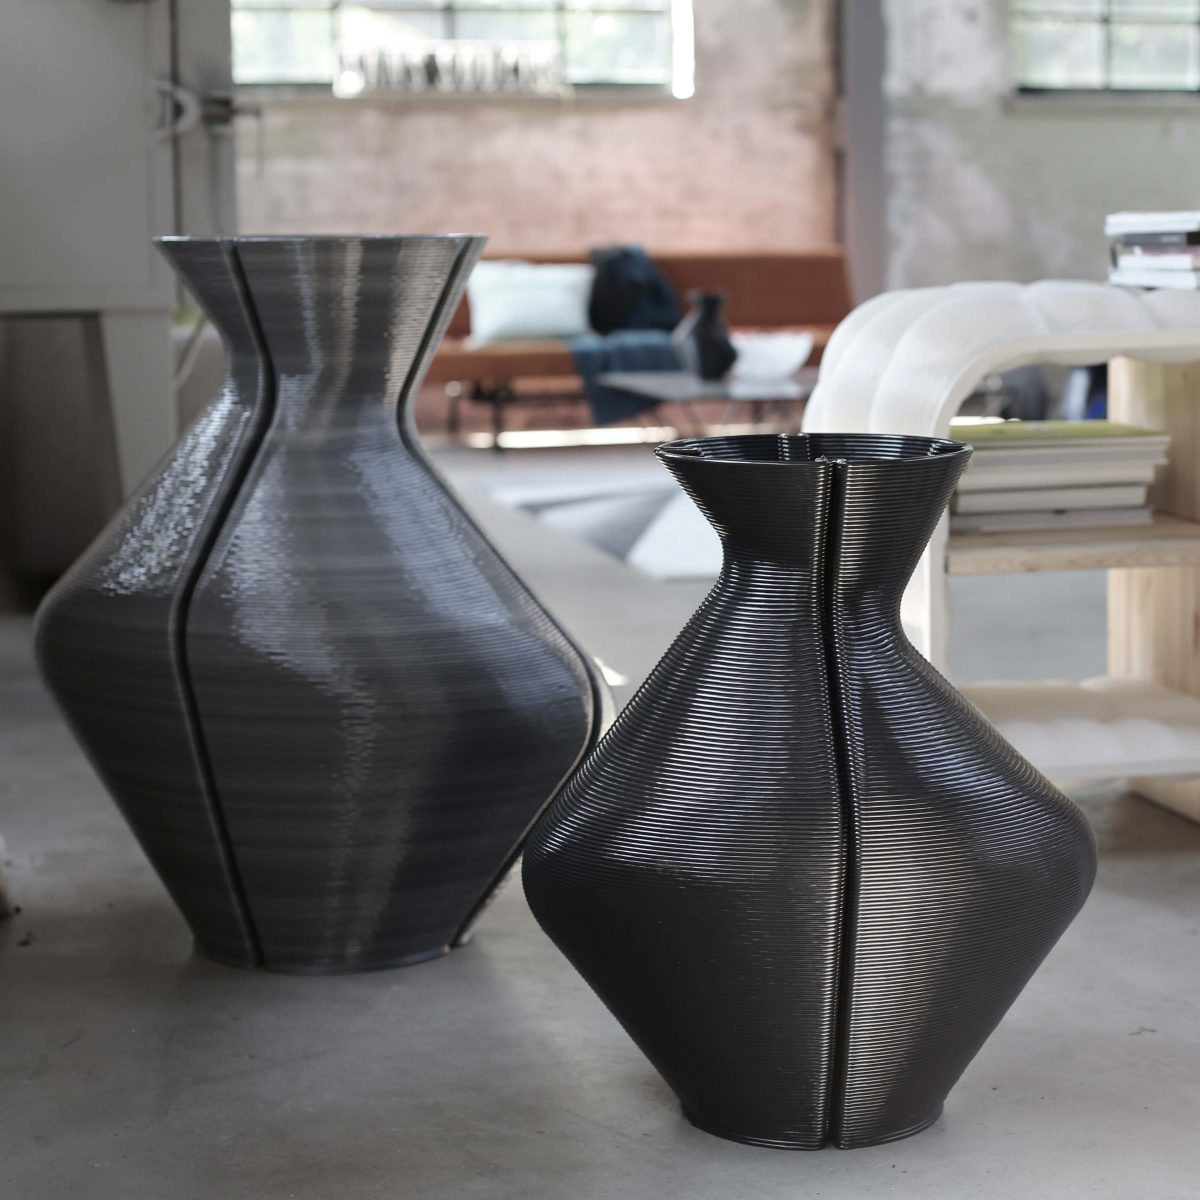 Changing Vases, Black and Ash Grey. Photo Studio Dirk Vander Kooij